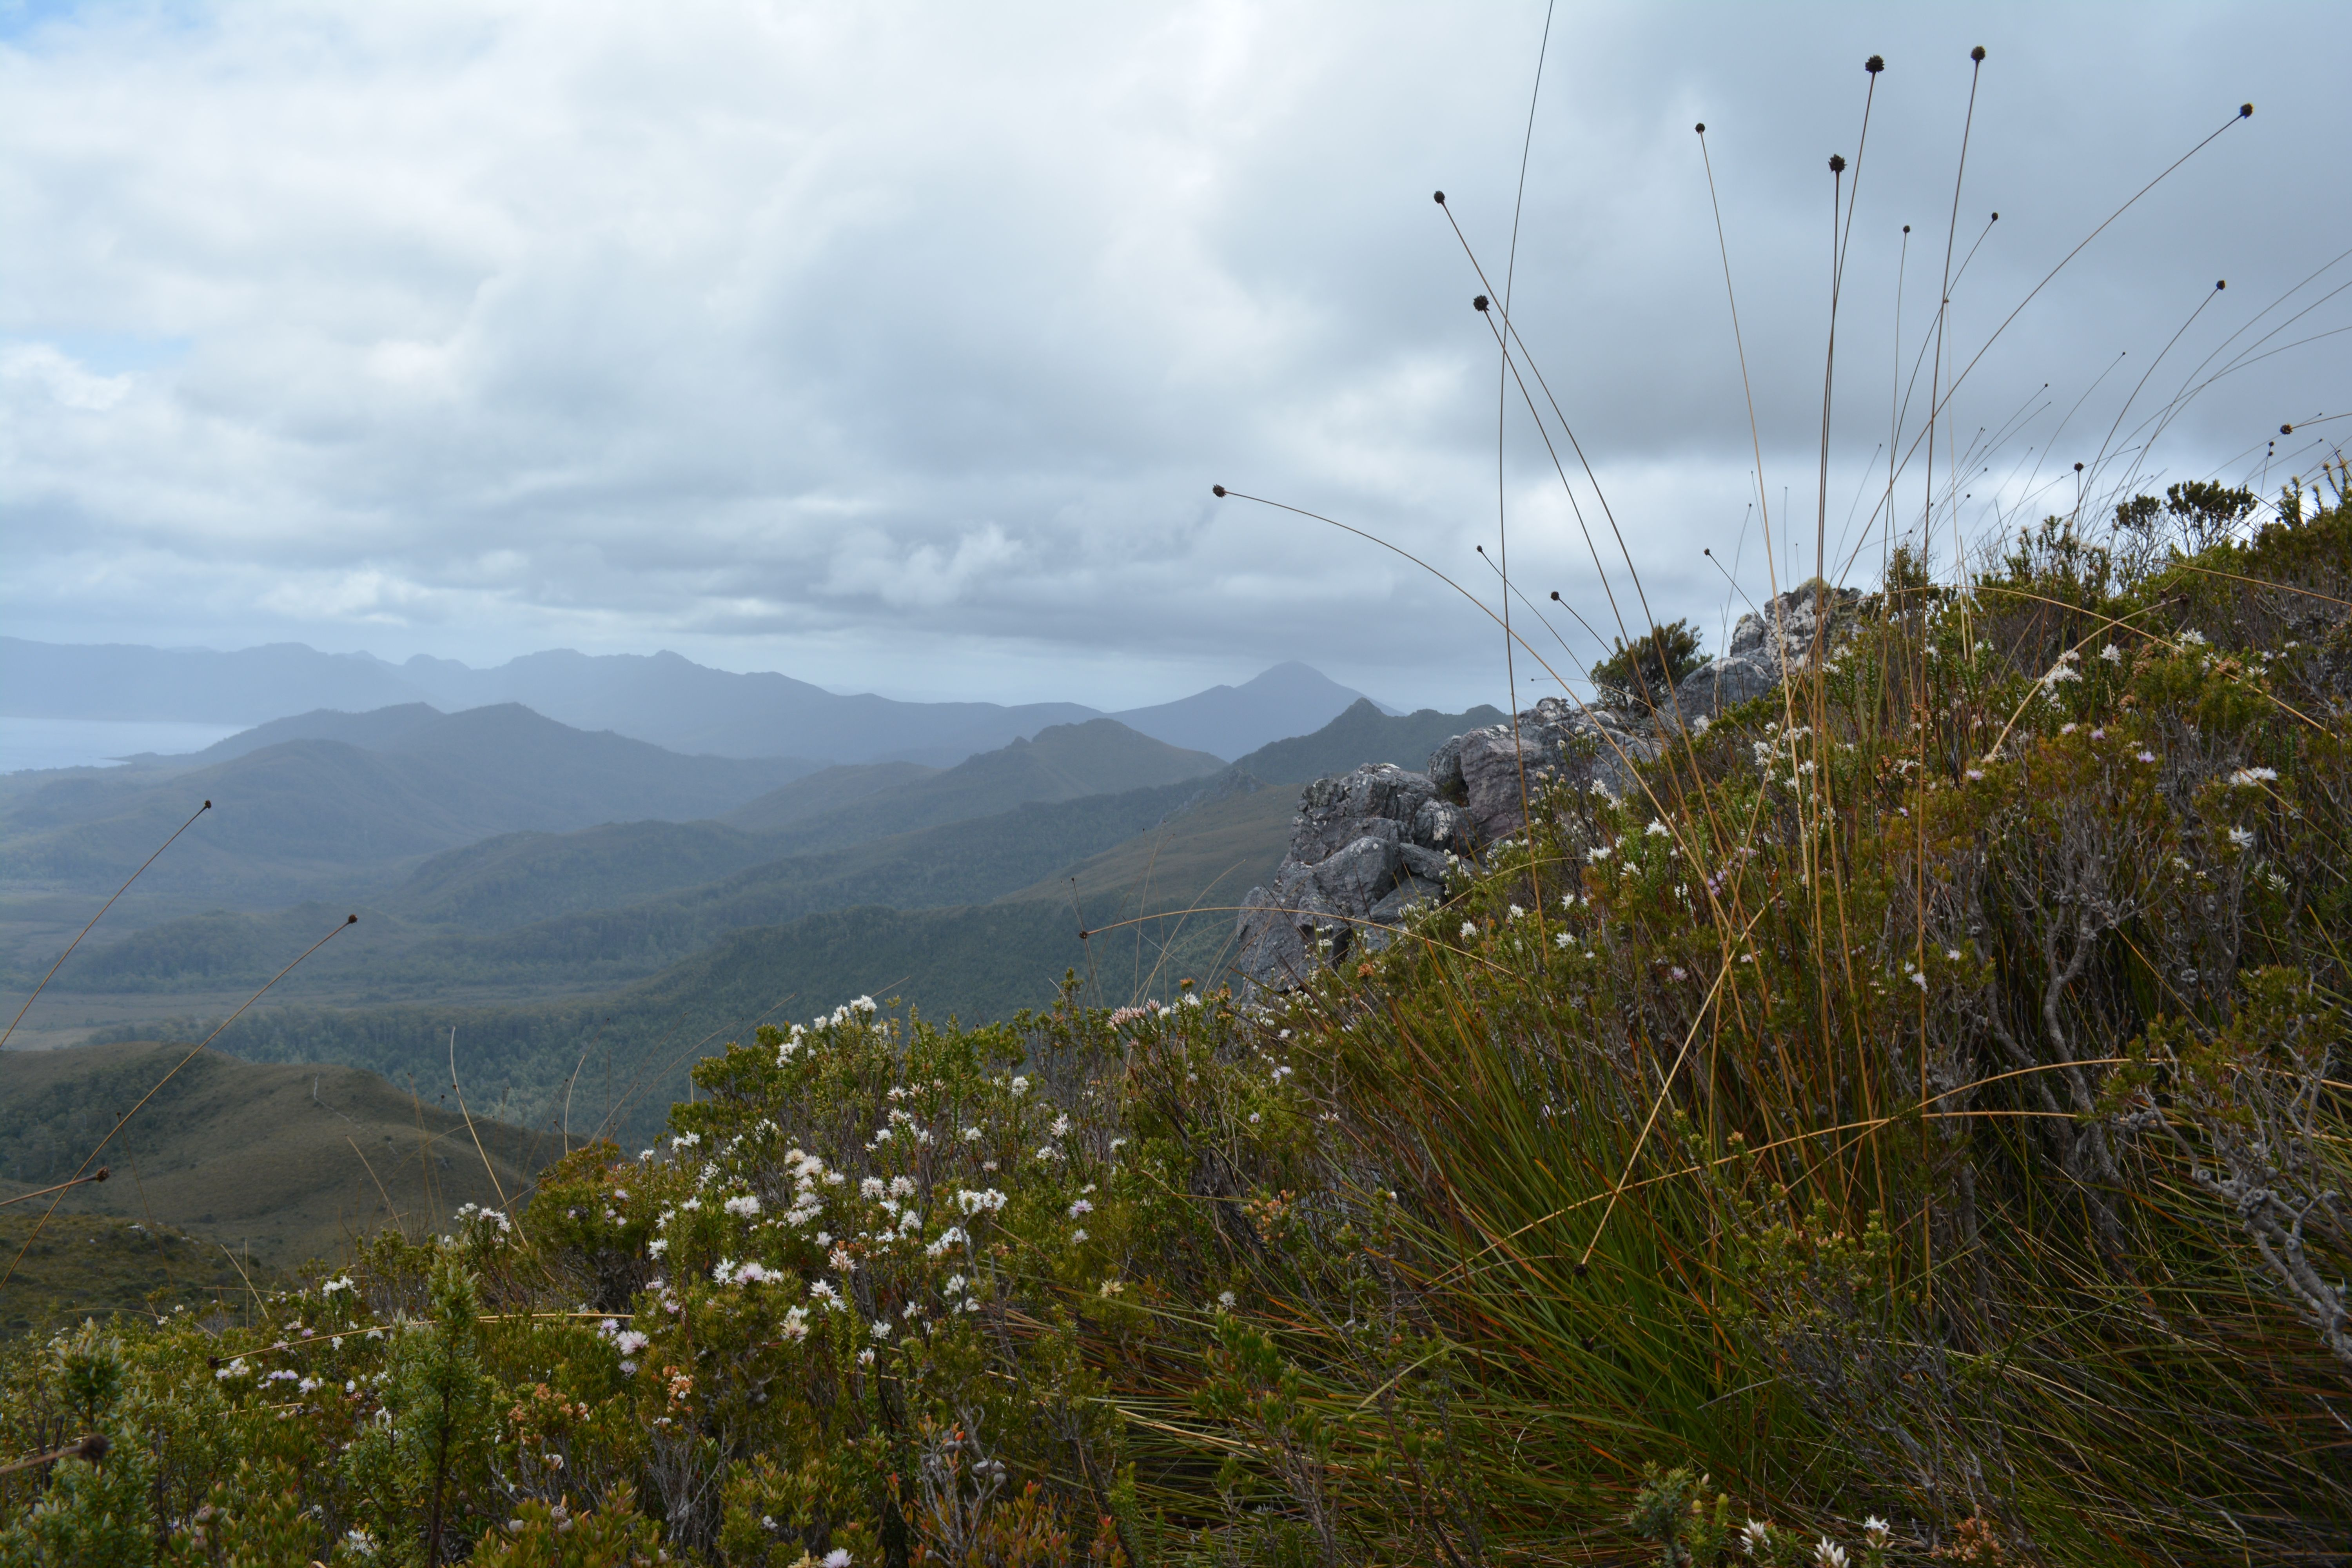 This photo was taken by Naomi Nielsen while attempting to summit Mount Anne in South East Tasmania, capturing a feature of the landscape - button grass